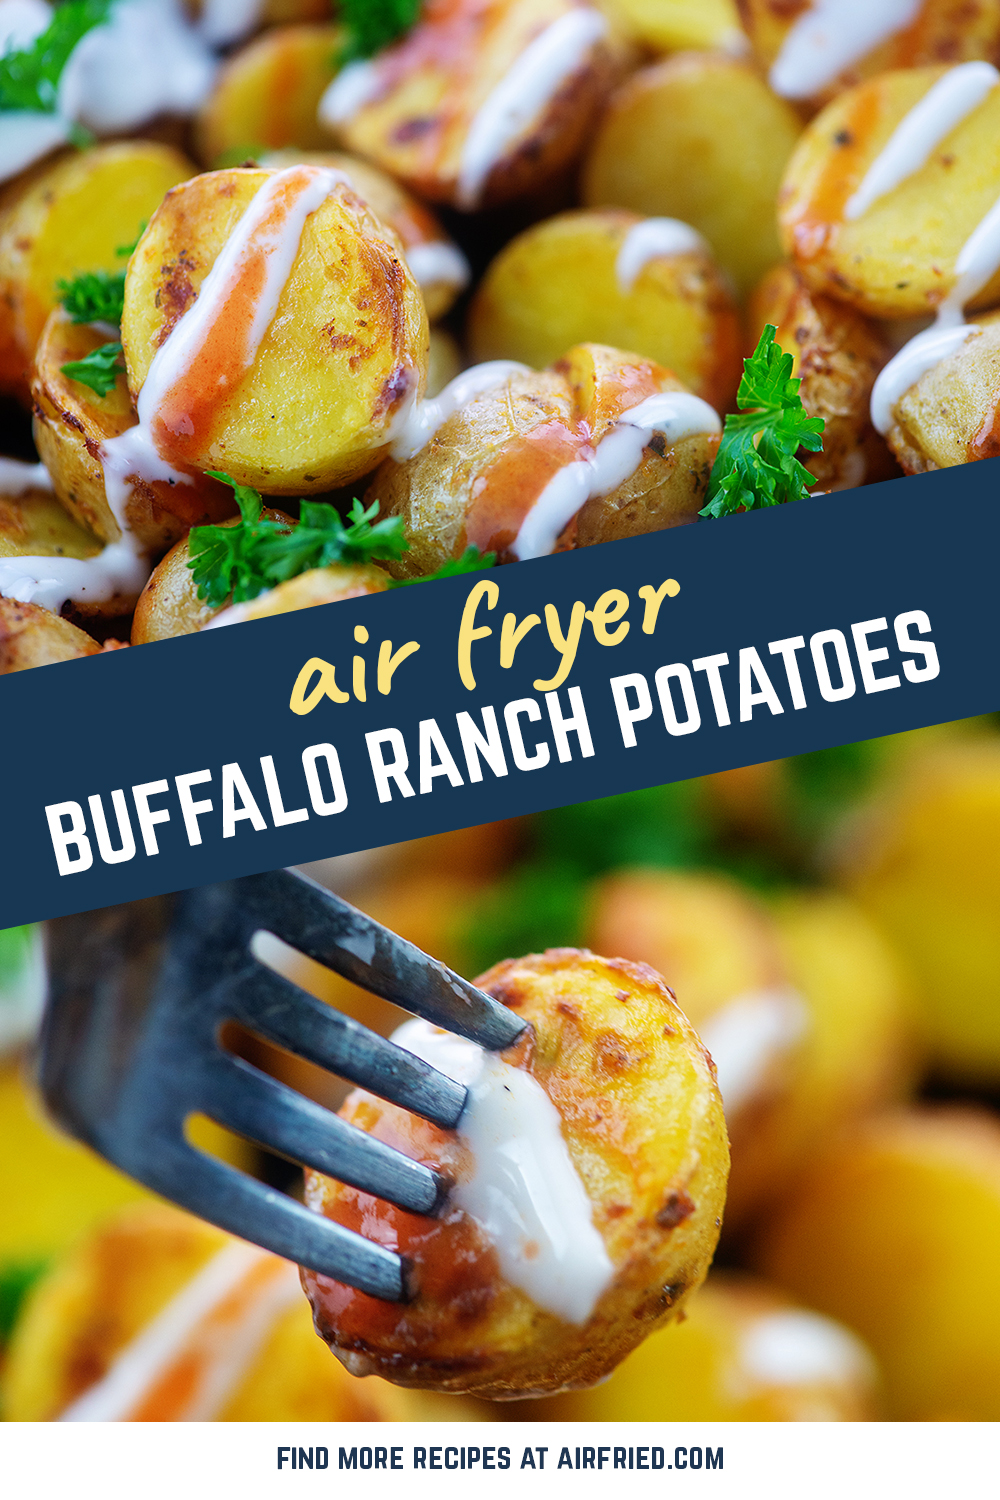 These air fryer potatoes are soft in the center, slightly crispy on the edges, and lightly covered in buffalo ranch.  They are perfect!  #airfried #recipes #appetizers